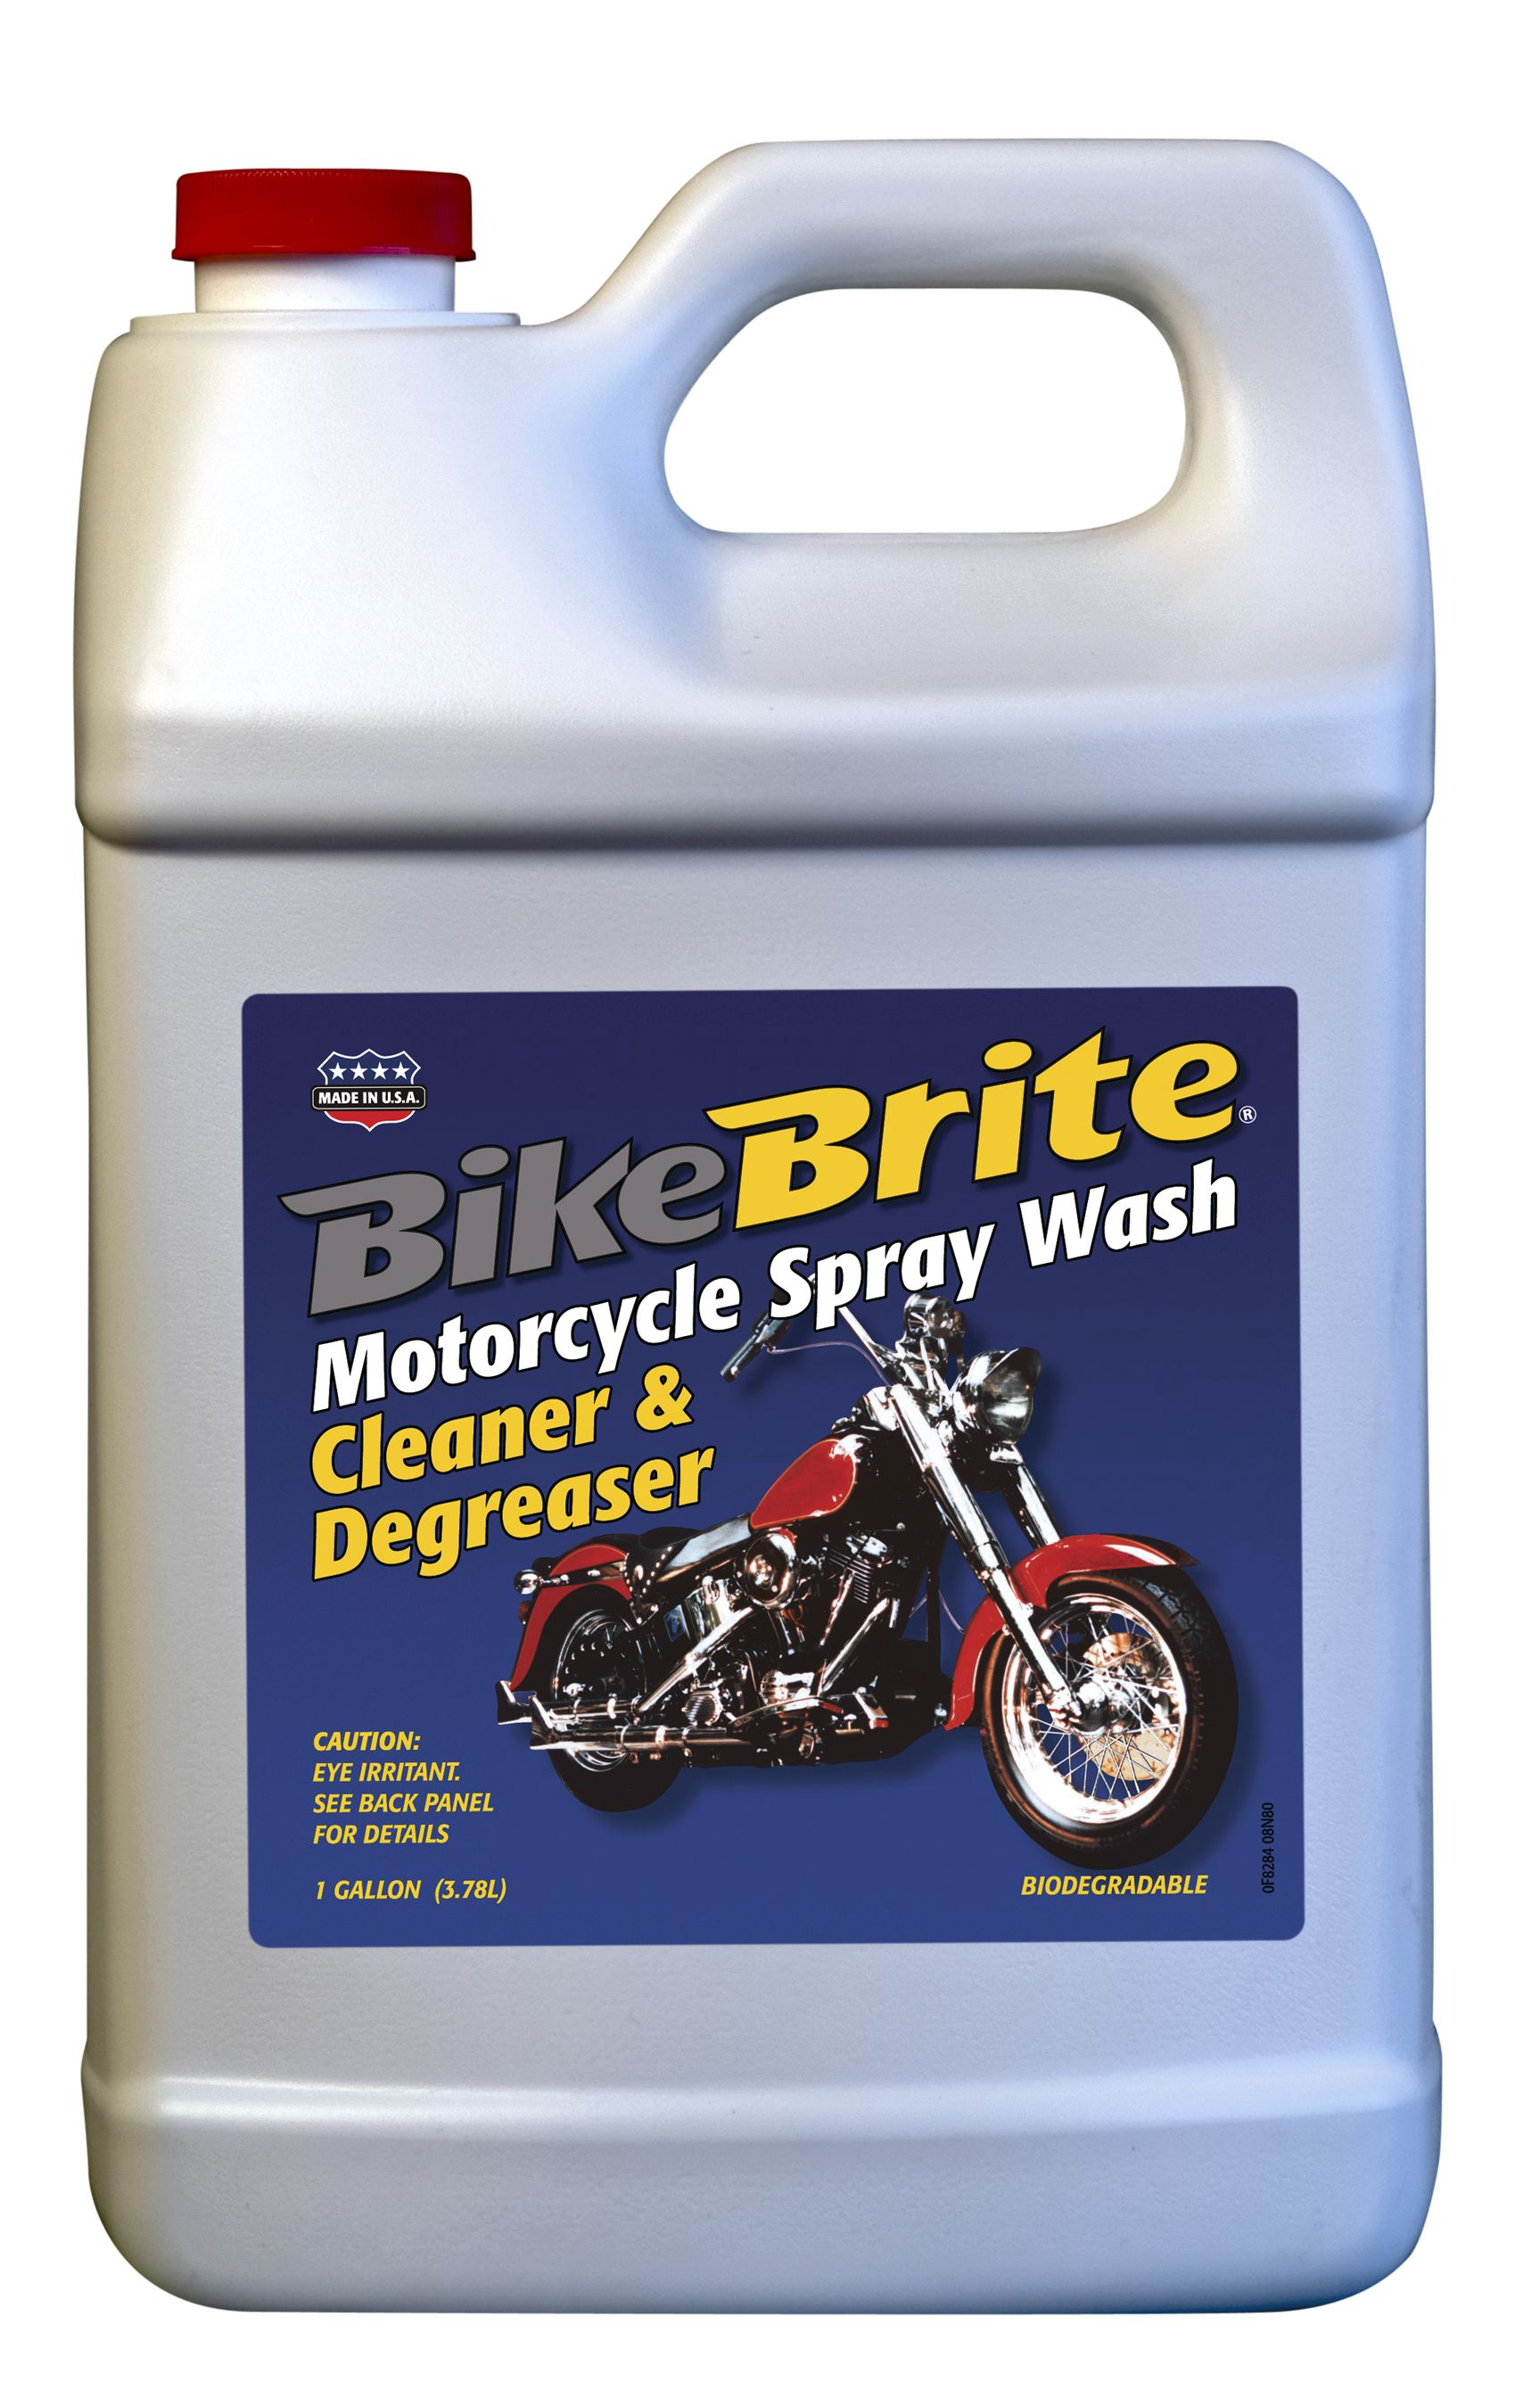 Bike Brite 1 Gallon Jug Save Money Today Degreasers Cleaners